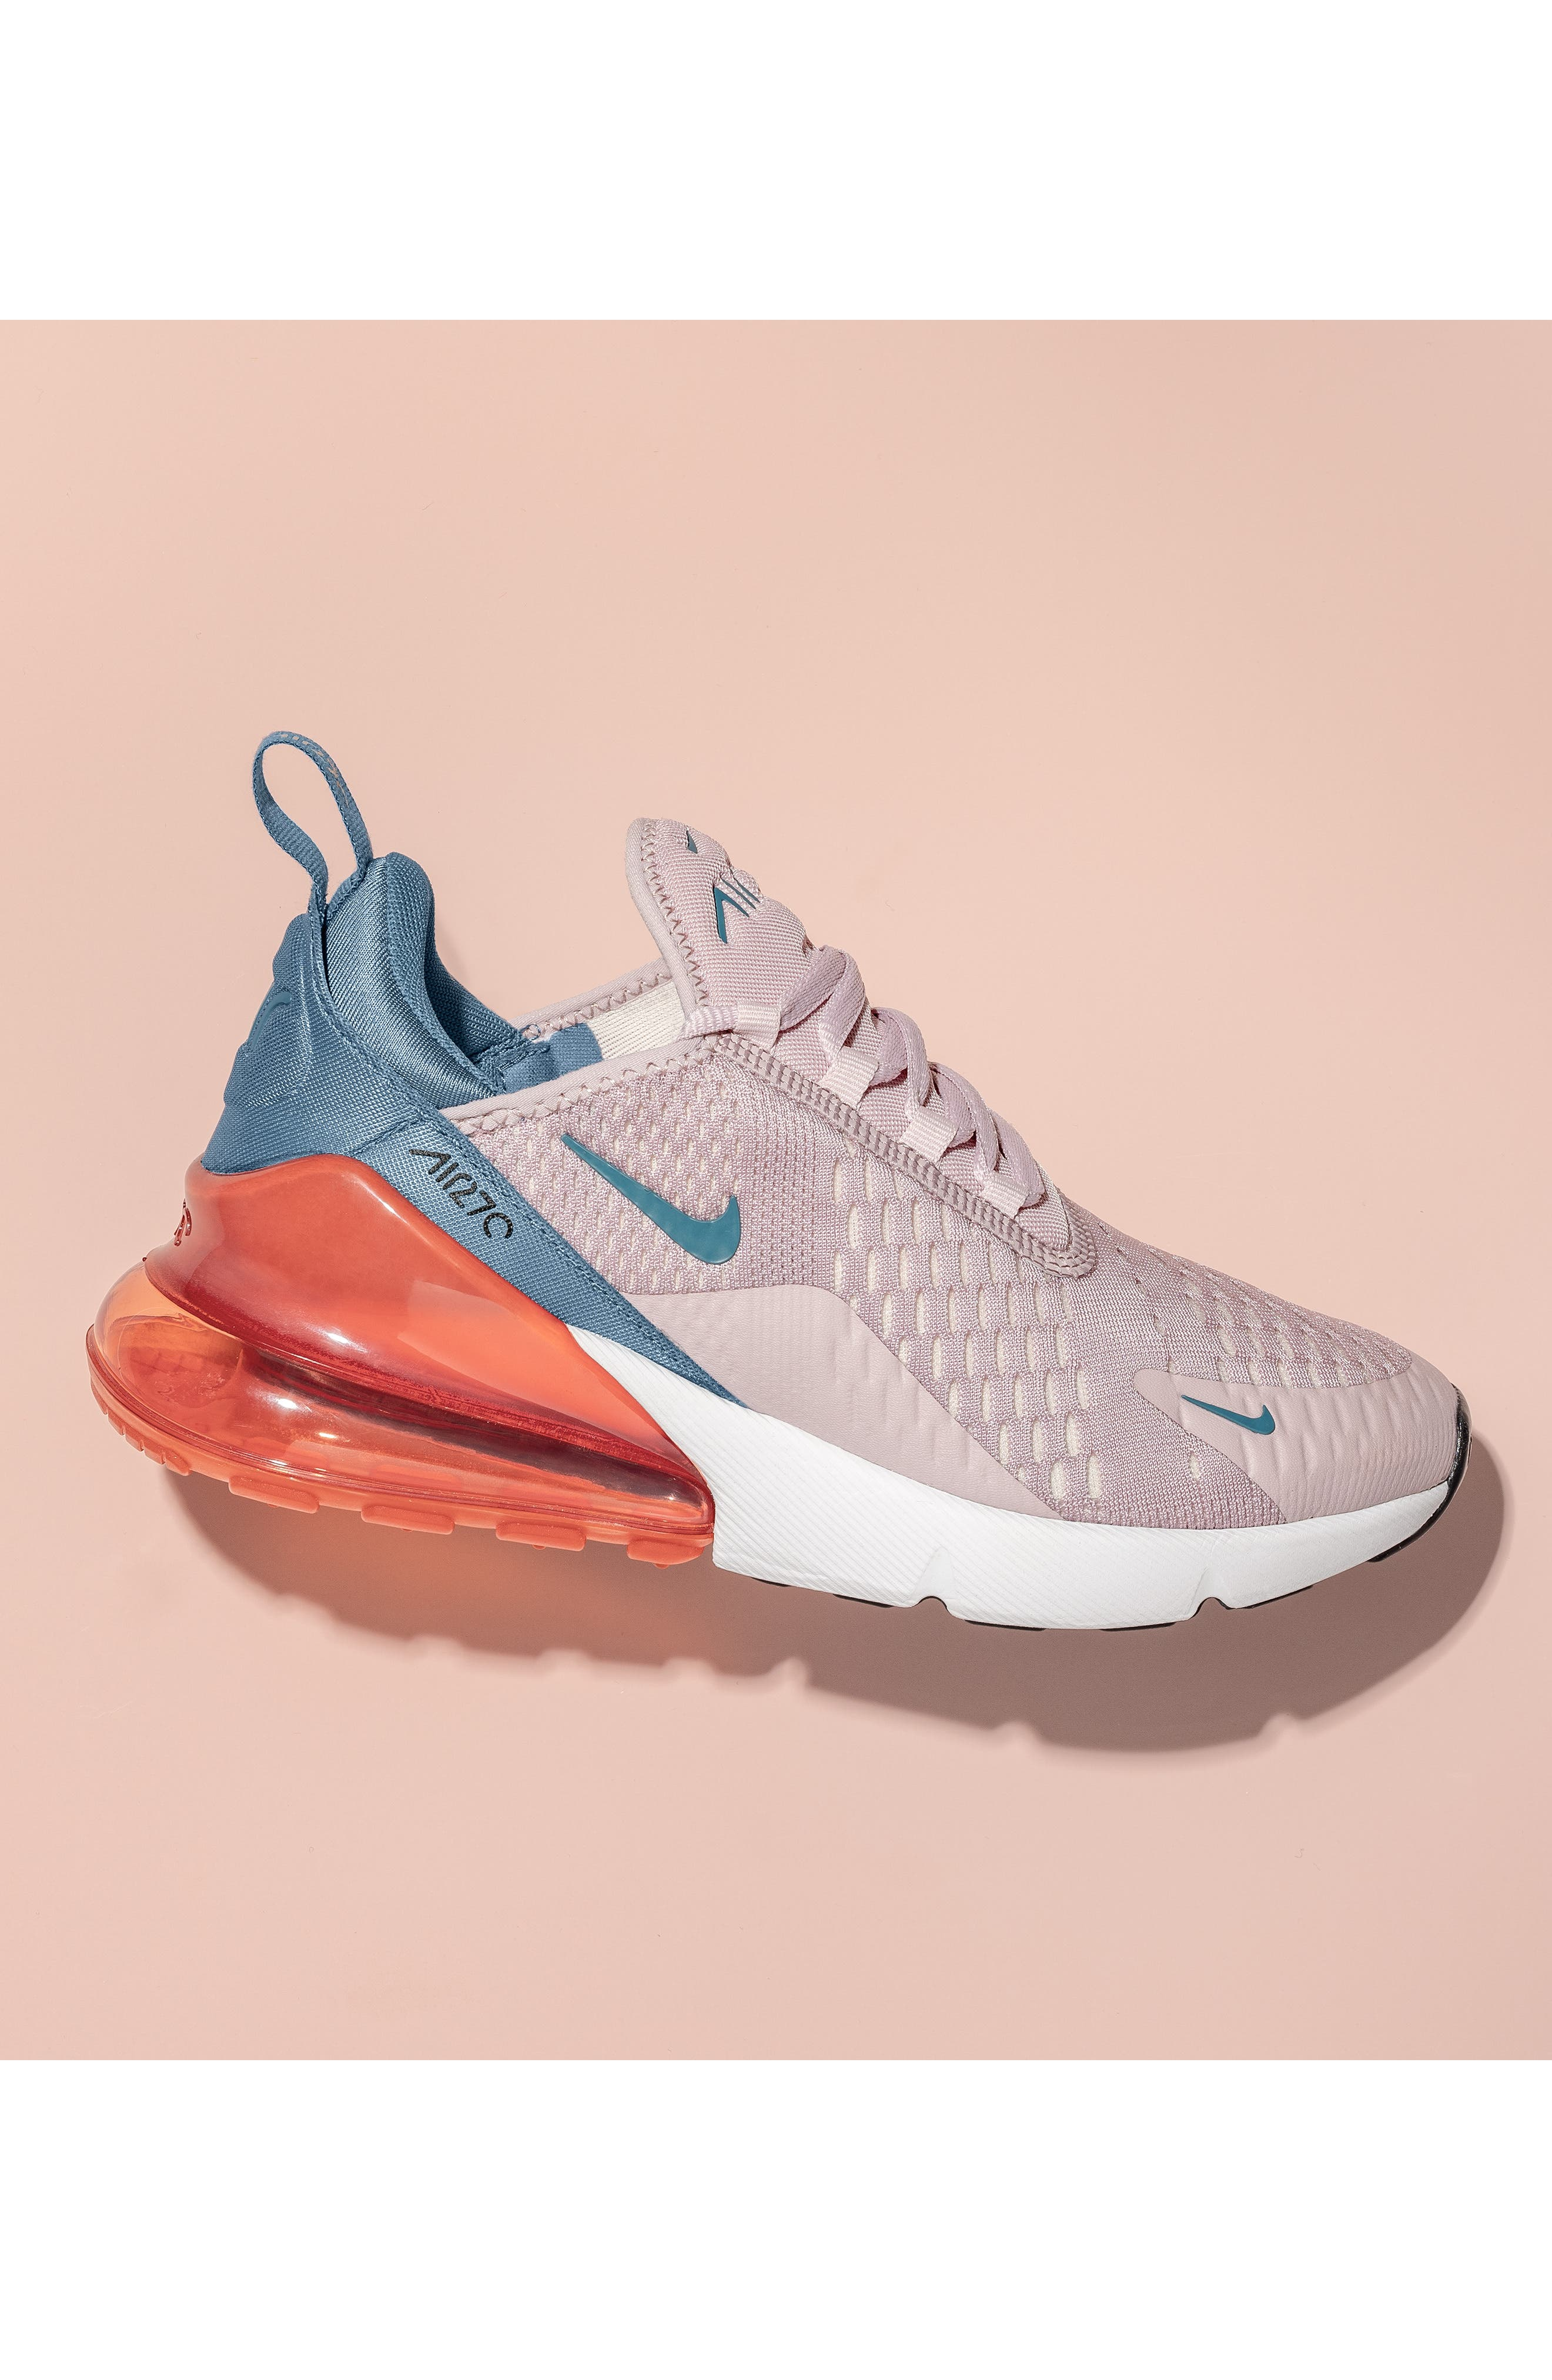 Air Max 270 Premium Sneaker,                             Alternate thumbnail 8, color,                             BLACK/ IGLOO TURQUOISE WHITE